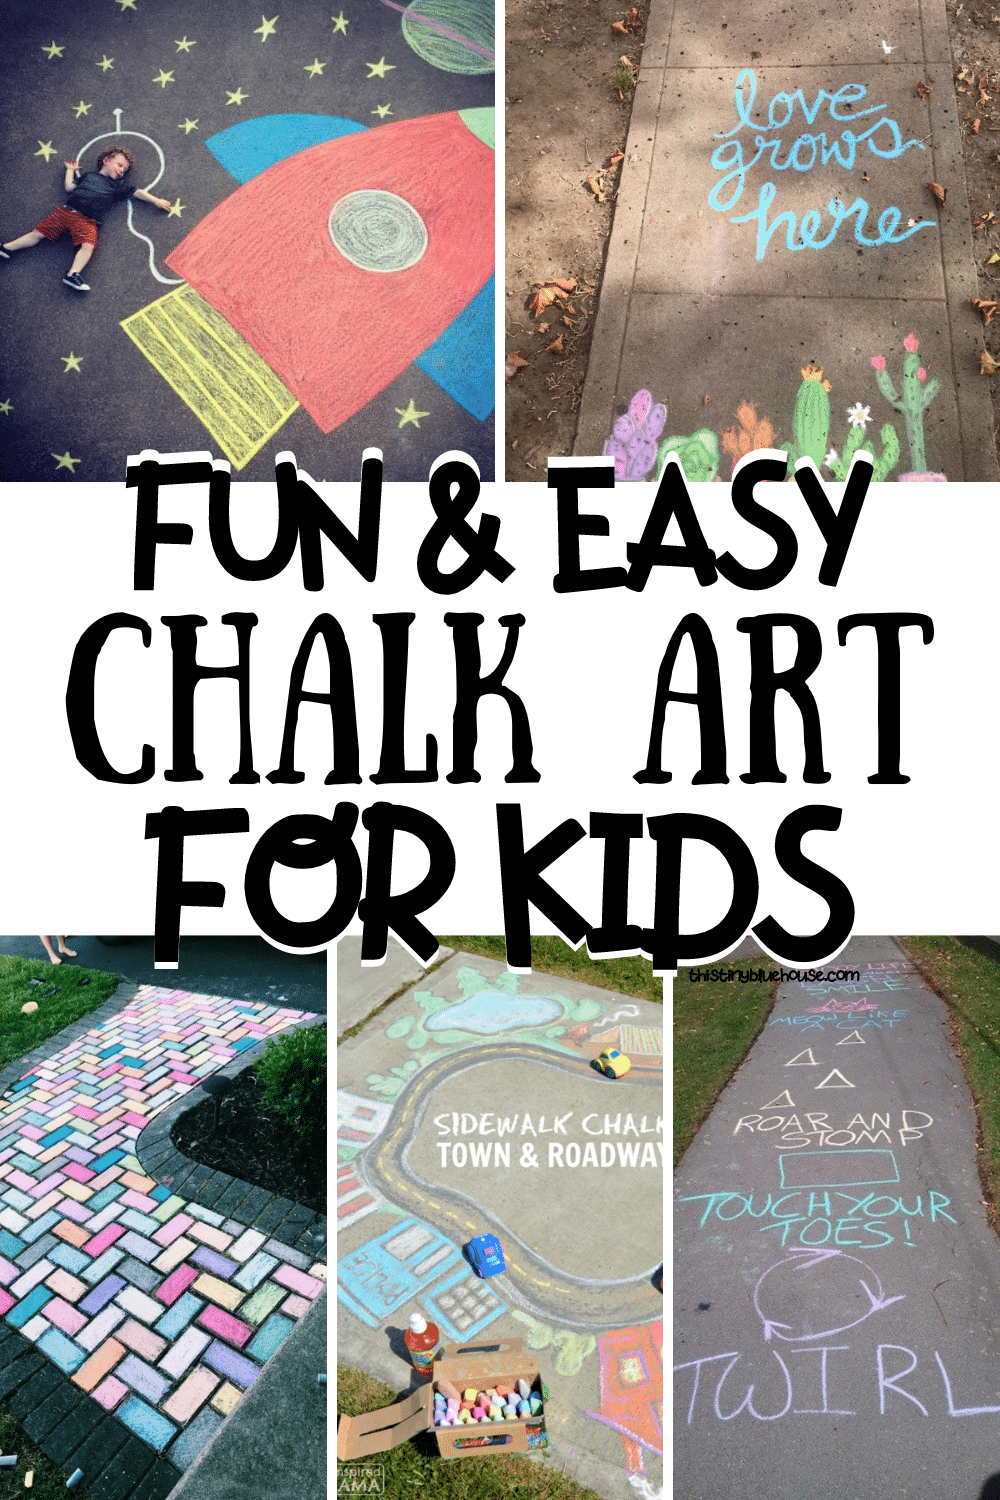 Fun & Easy Chalk Art For Kids